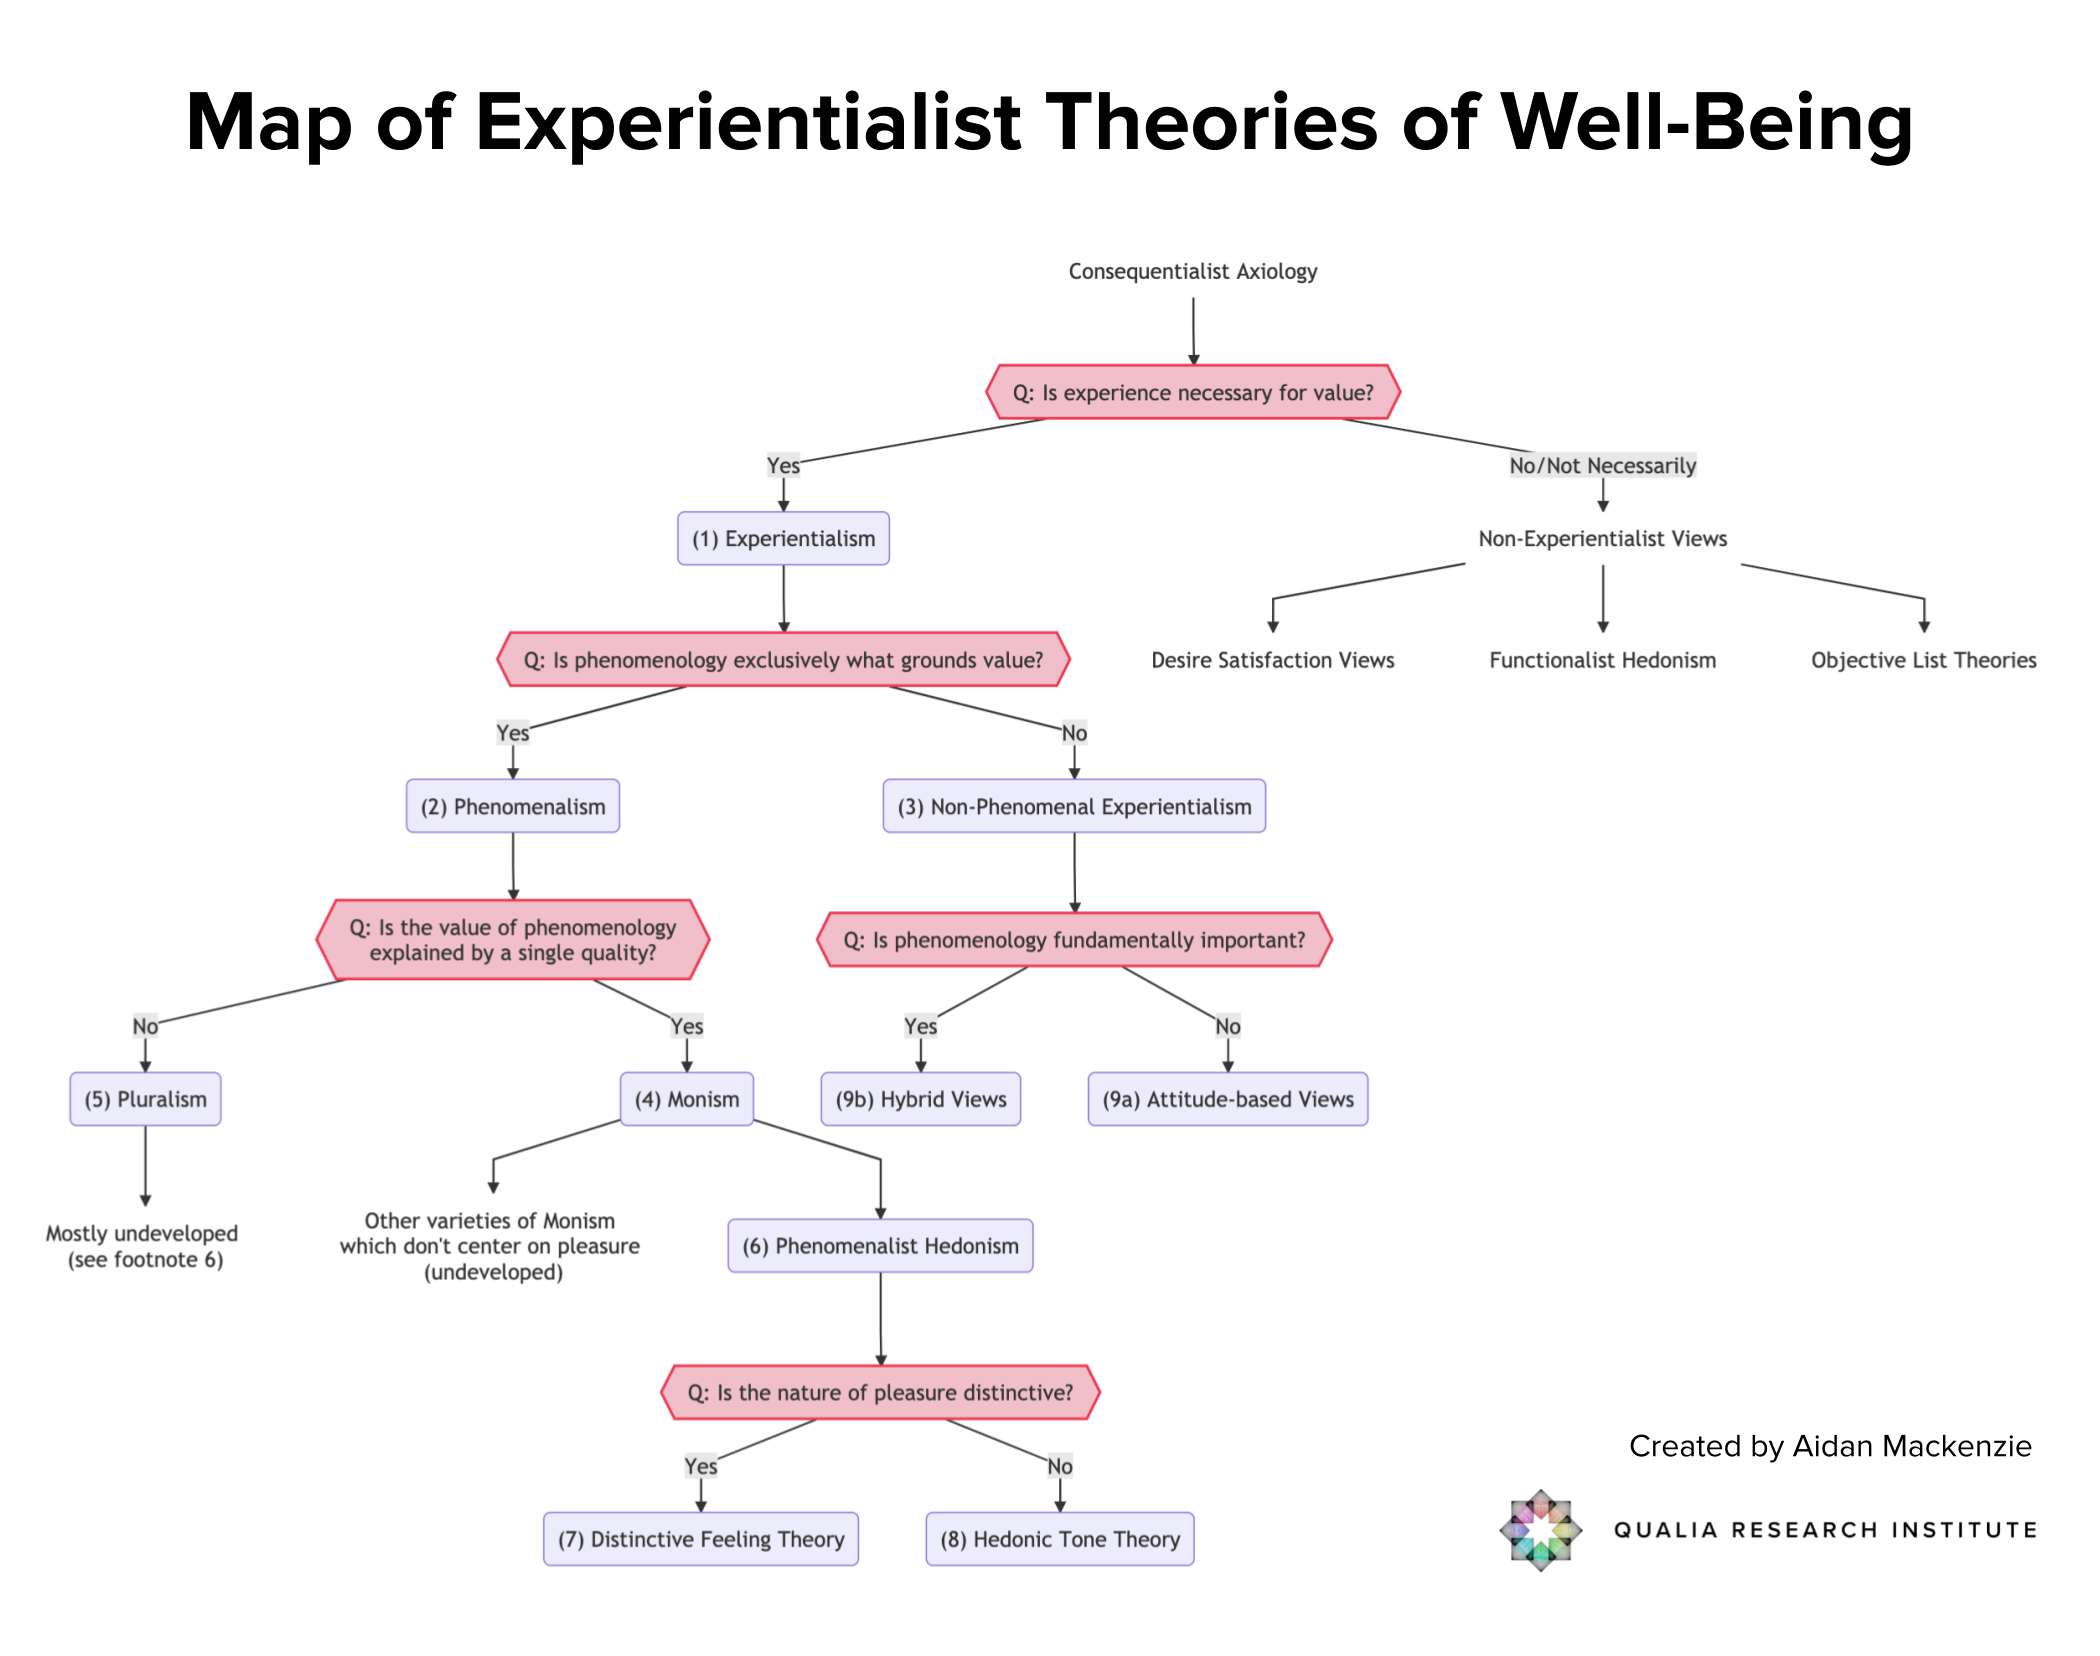 Map of Experientialist Theories of Well-Being